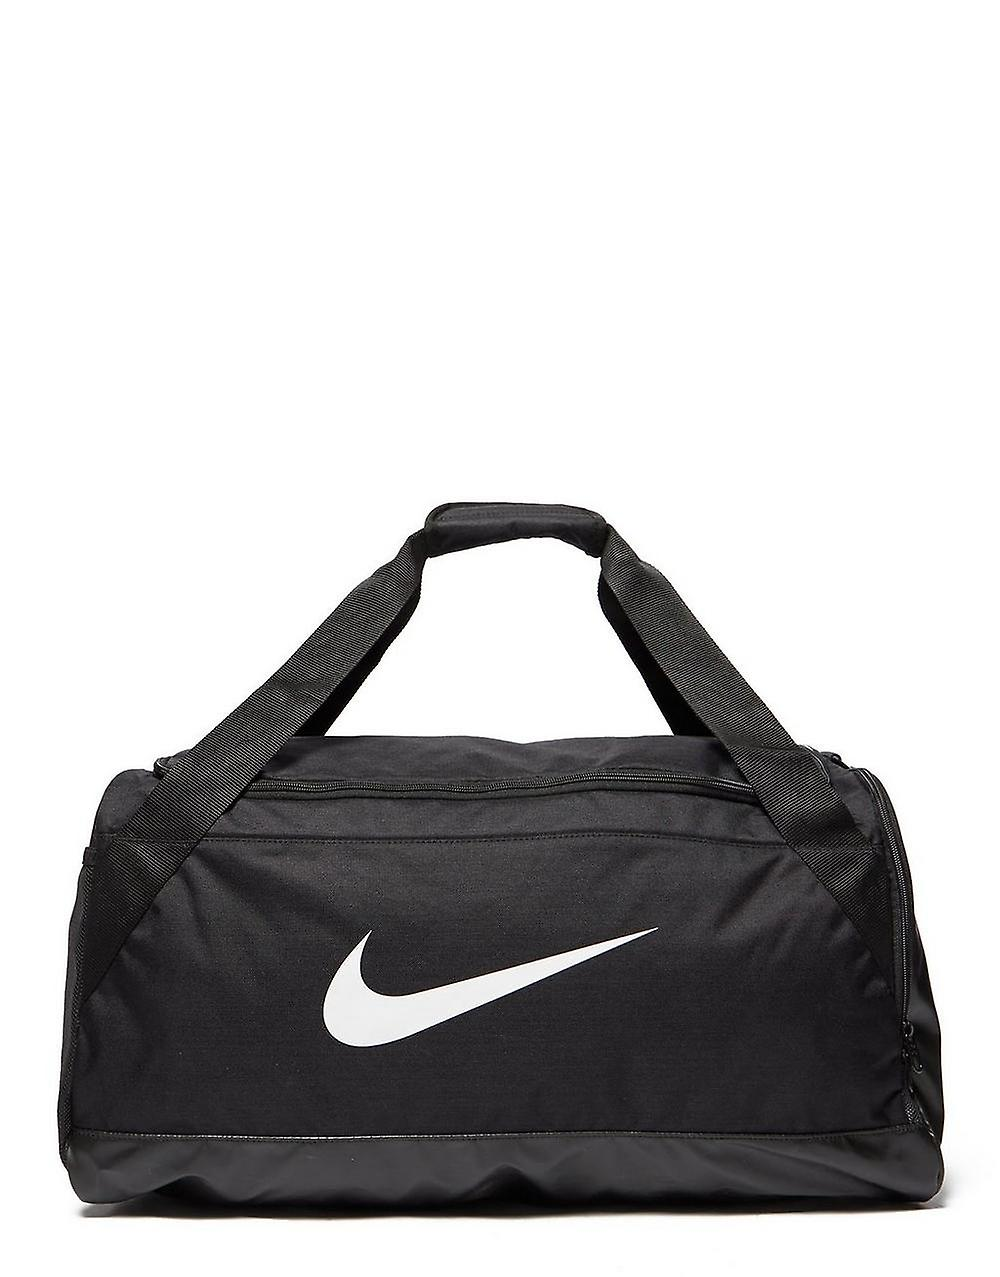 cab07971182f1 Nike Brasilia Medium Training Duffel Bag